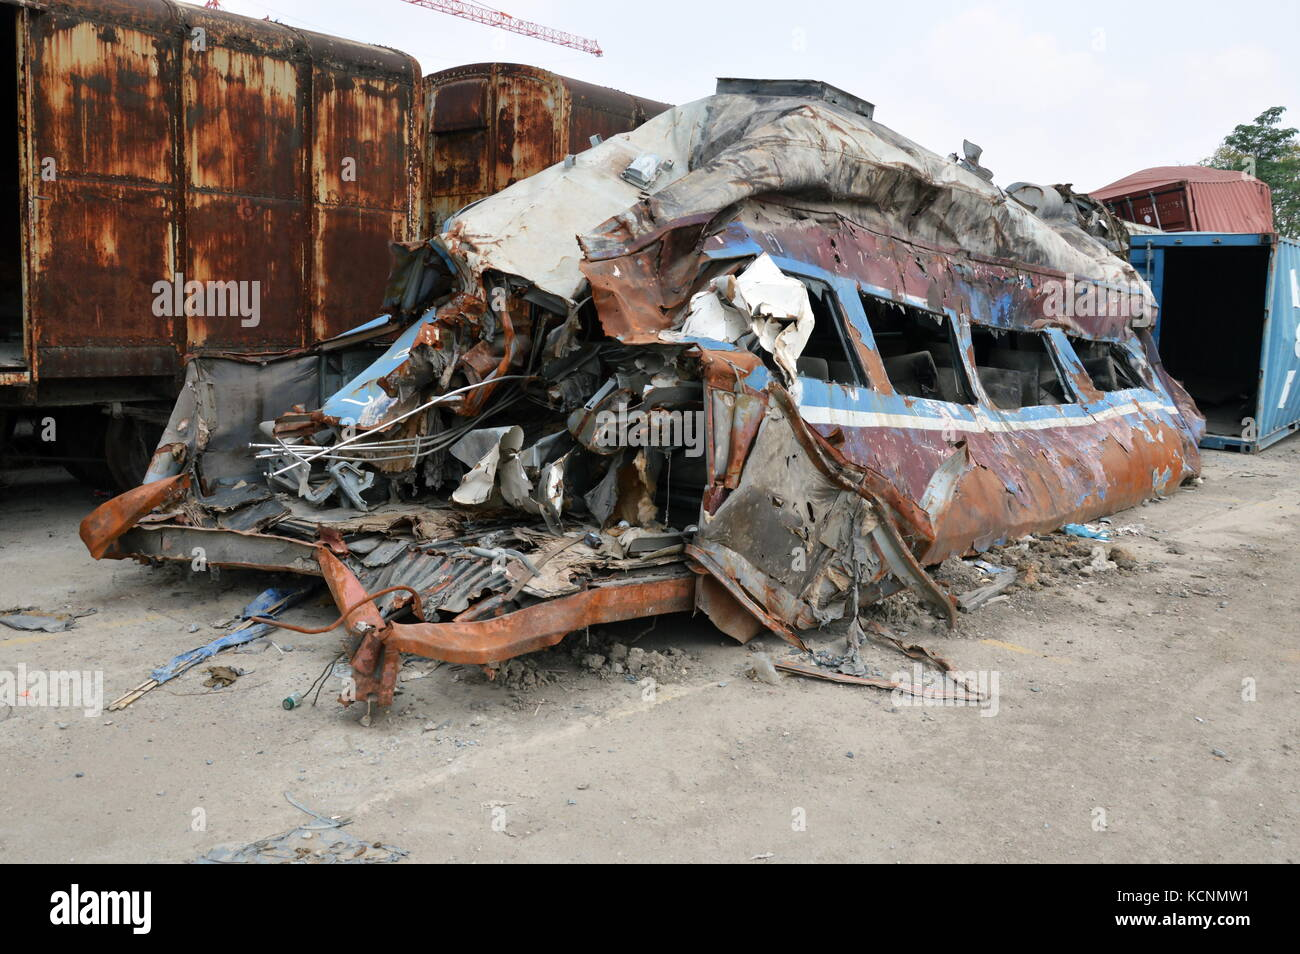 train crash by accident parking in junkyard - Stock Image